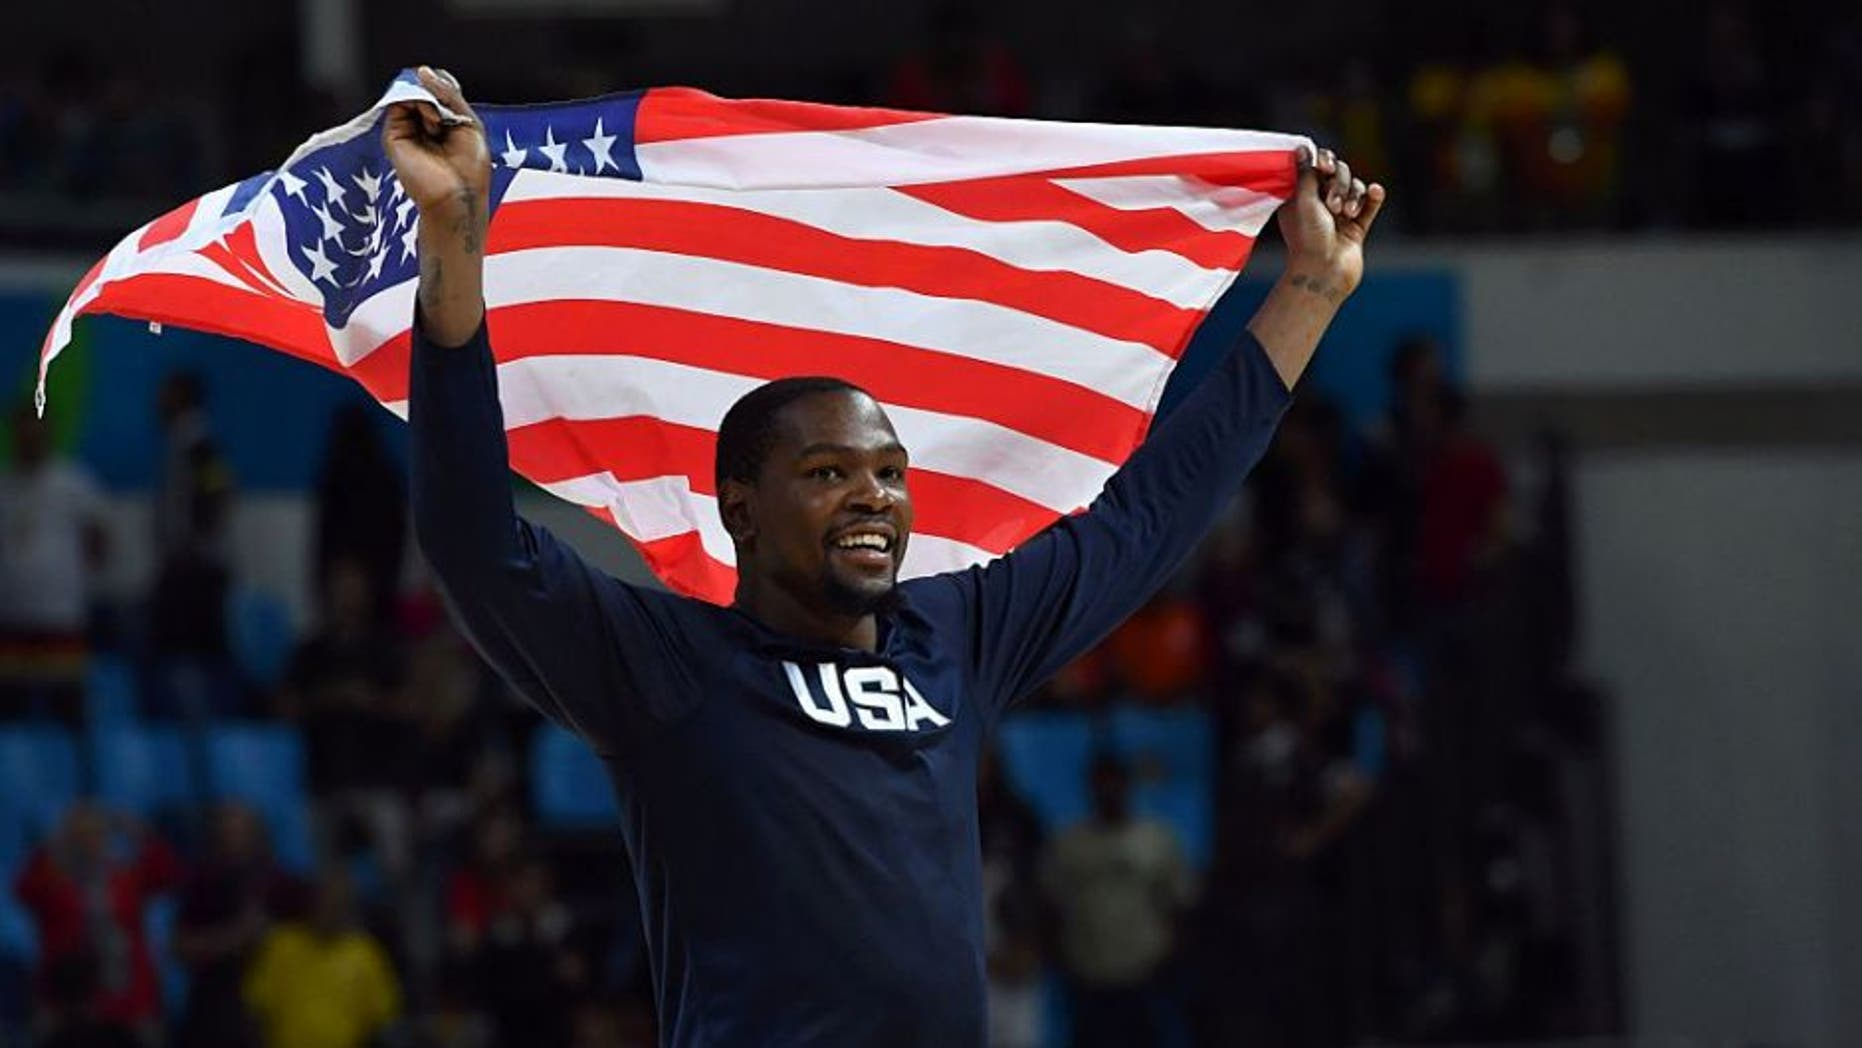 USA's guard Kevin Durant celebrates with USA's flag after defeating Serbia during a Men's Gold medal basketball match between Serbia and USA at the Carioca Arena 1 in Rio de Janeiro on August 21, 2016 during the Rio 2016 Olympic Games. / AFP / Andrej ISAKOVIC (Photo credit should read ANDREJ ISAKOVIC/AFP/Getty Images)